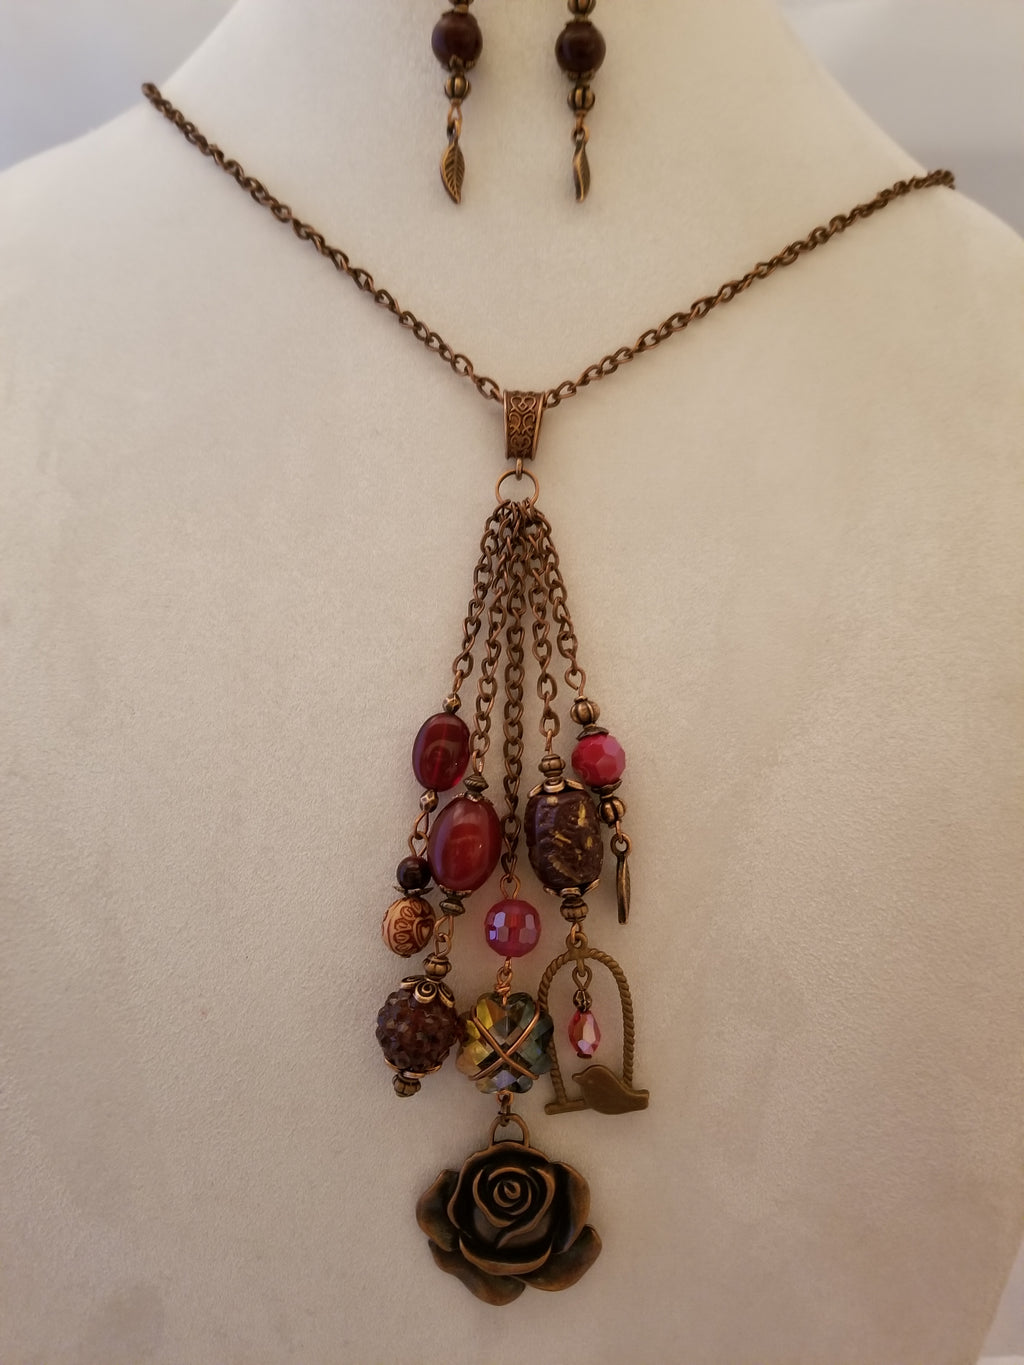 Burgundy Rose Necklace with Earrings